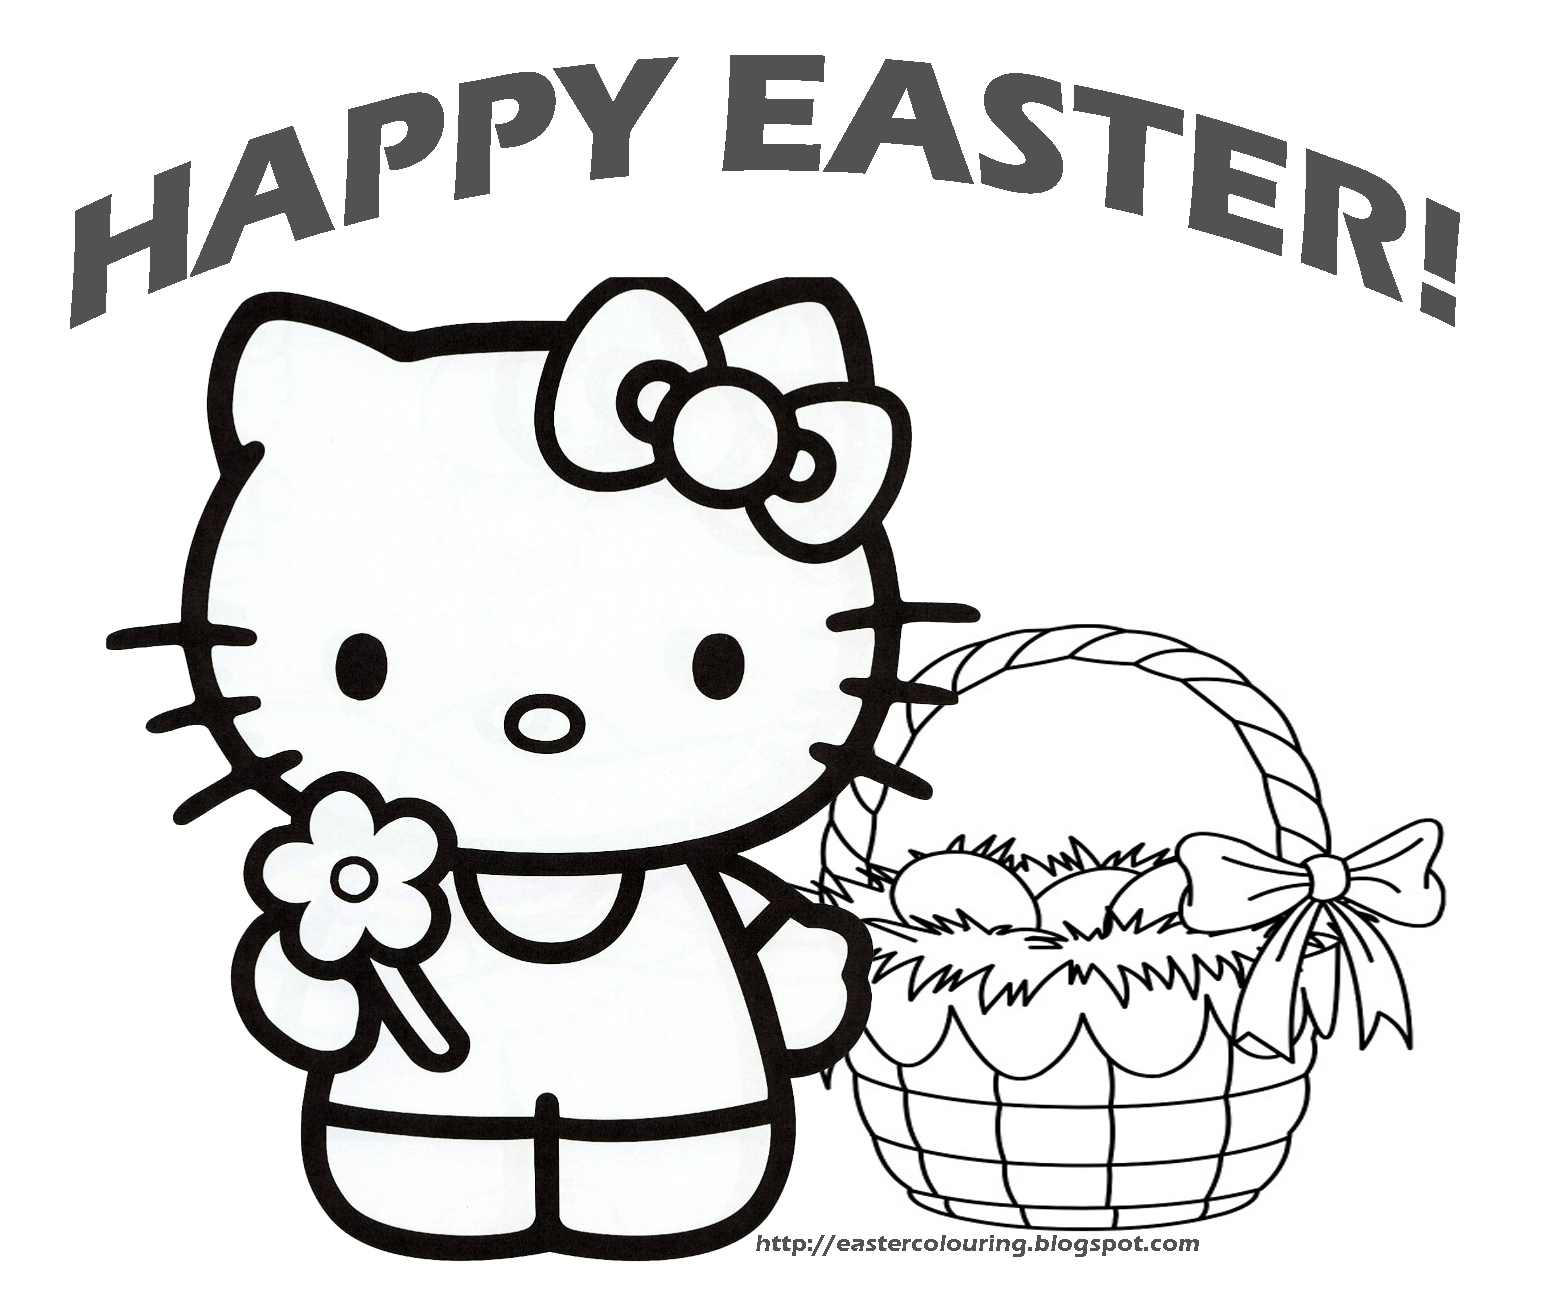 Easter Bunny Coloring Pages Free and Printable - coloring pages for easter